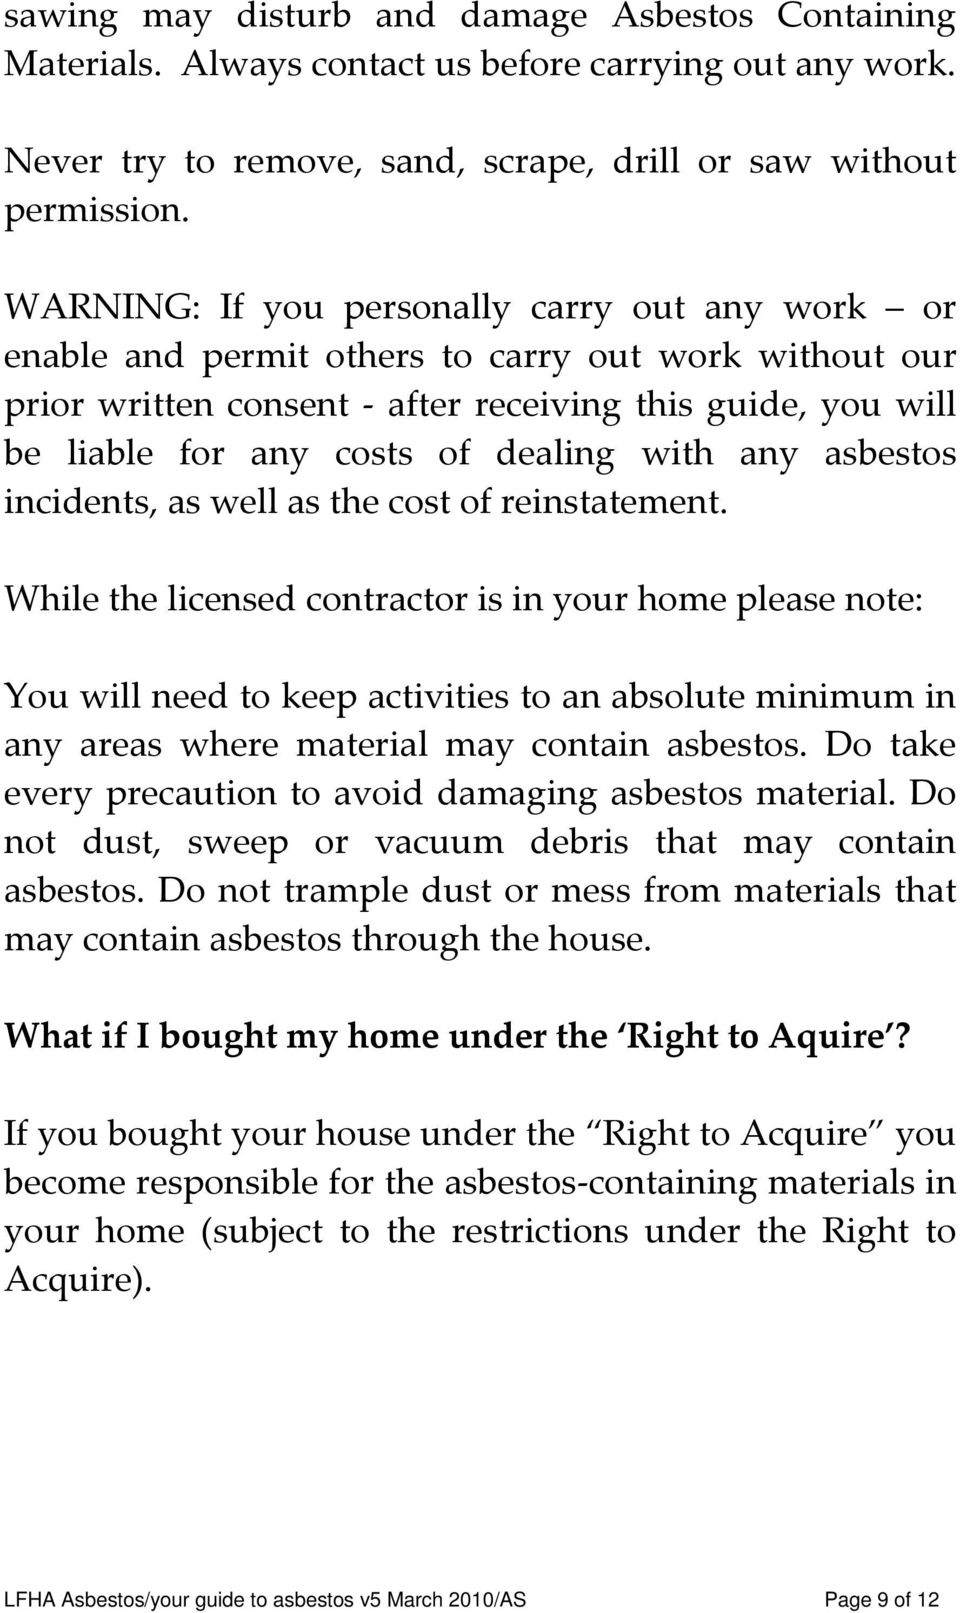 with any asbestos incidents, as well as the cost of reinstatement.